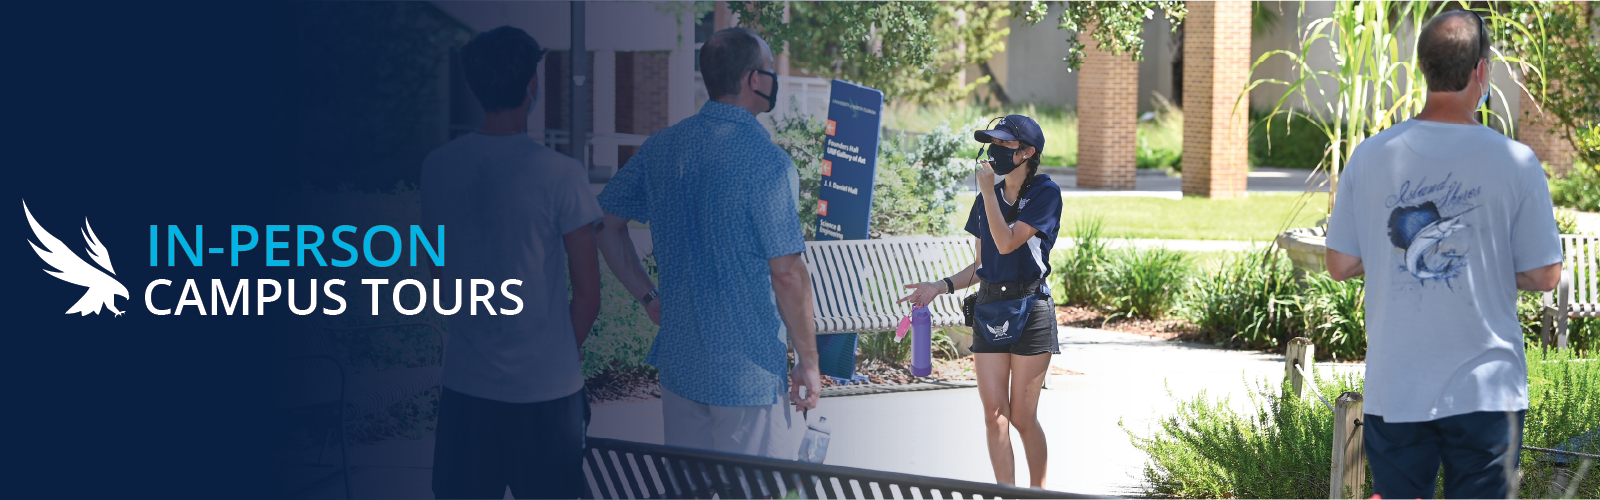 Tour guide wearing a mask speaking into a microphone with people around her with backs to the camera